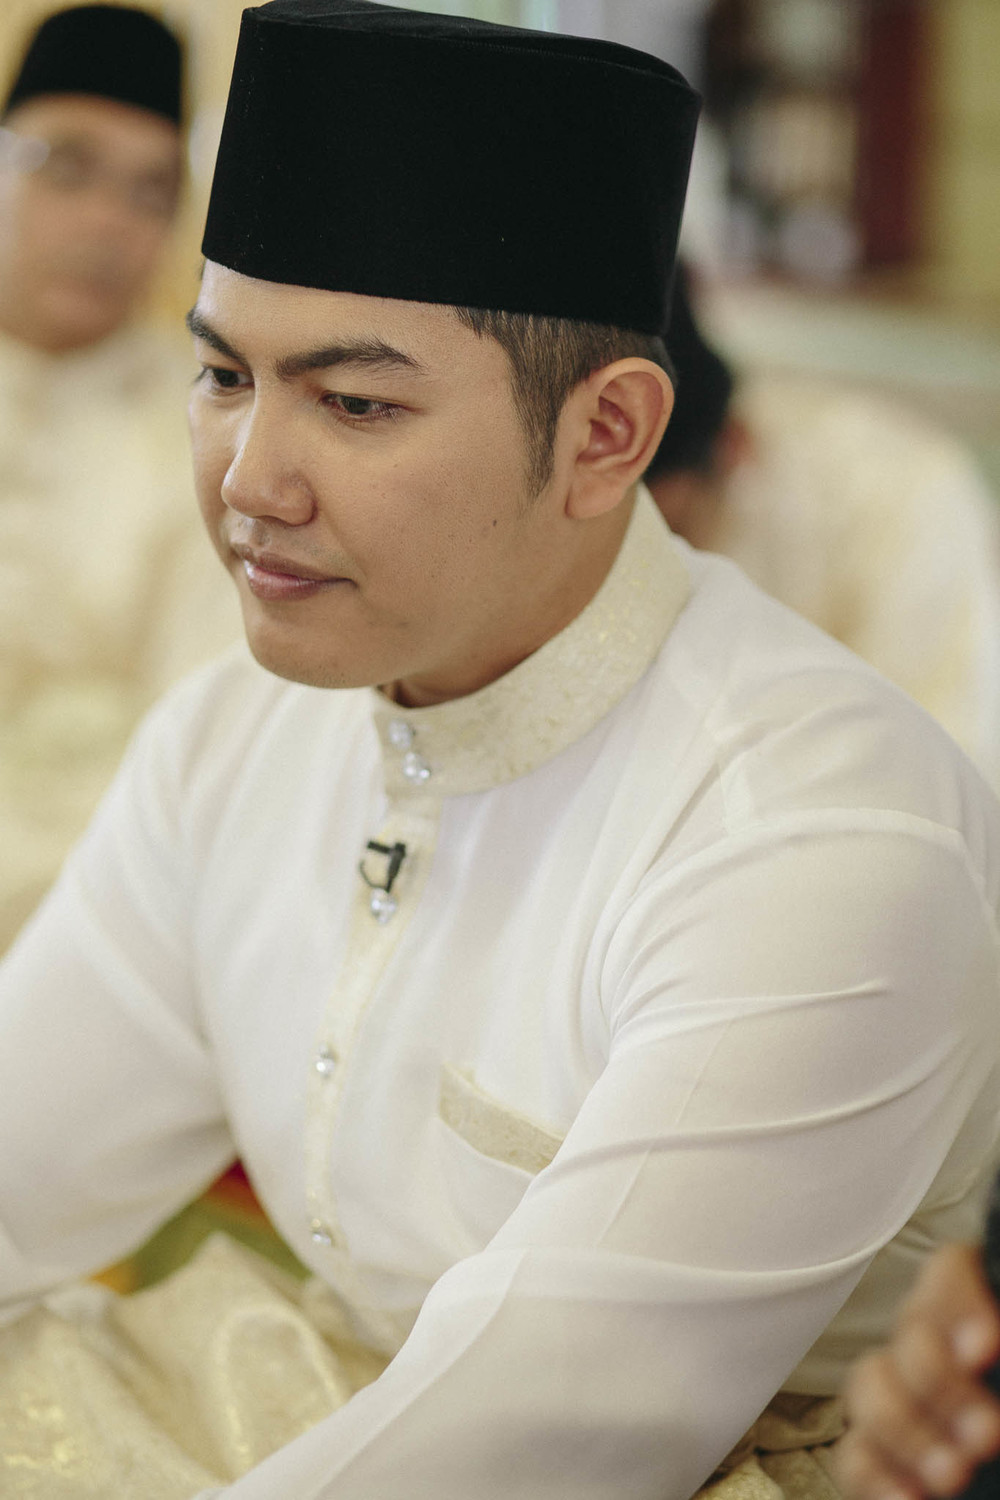 singapore-wedding-photographer-travel-khairul-atikah-14.jpg